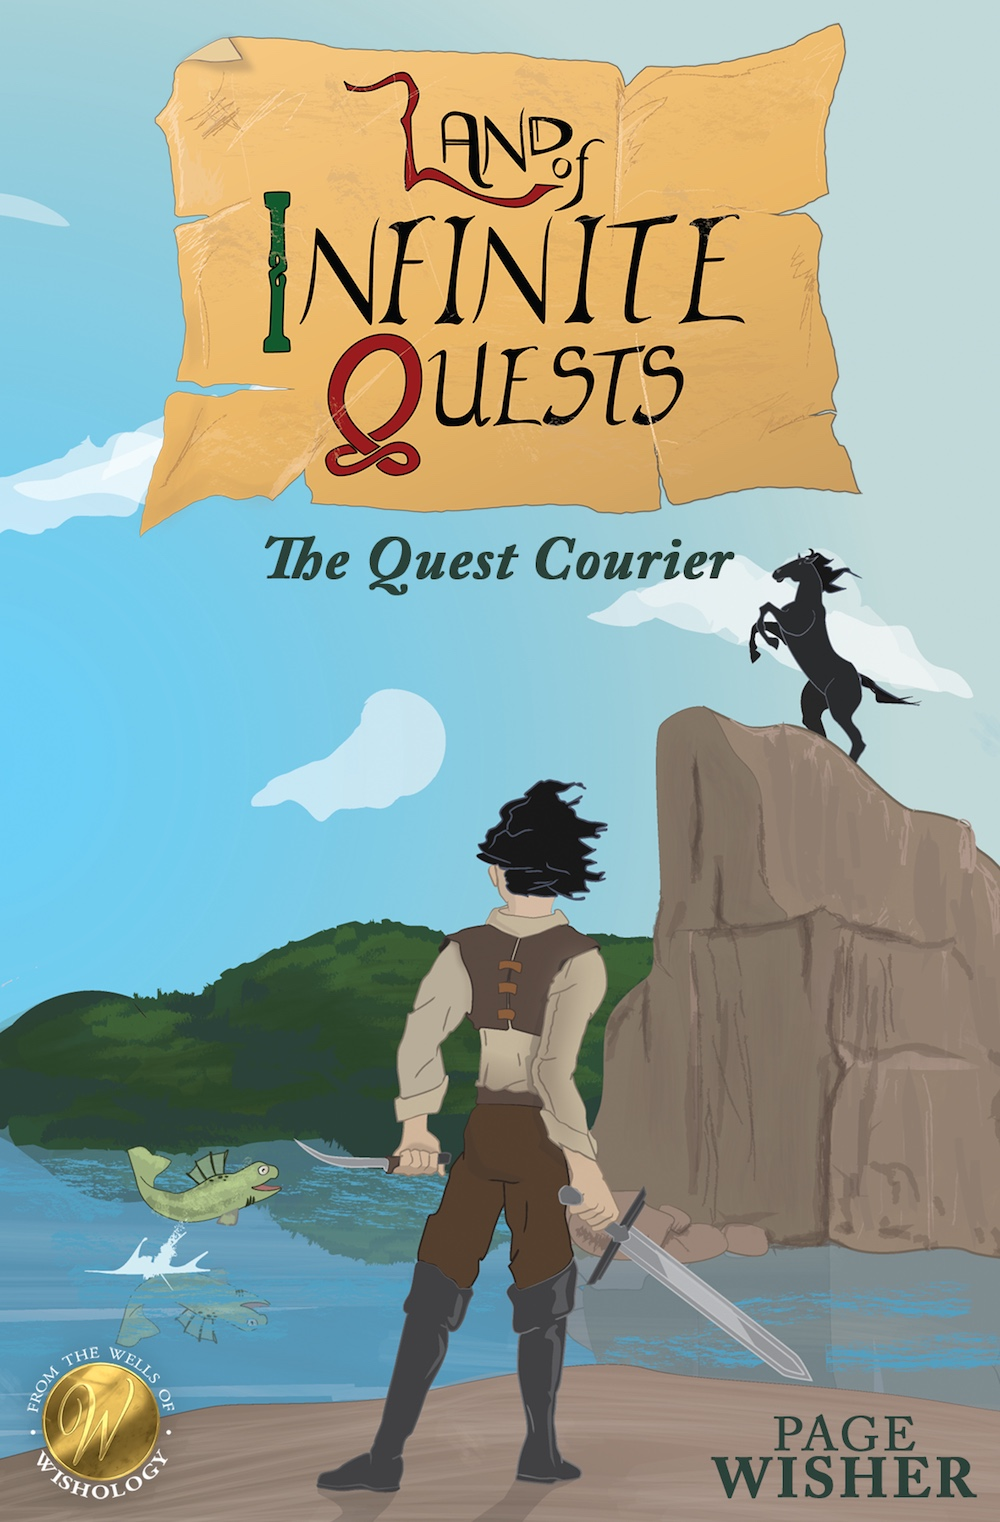 Land of Infinite Quests